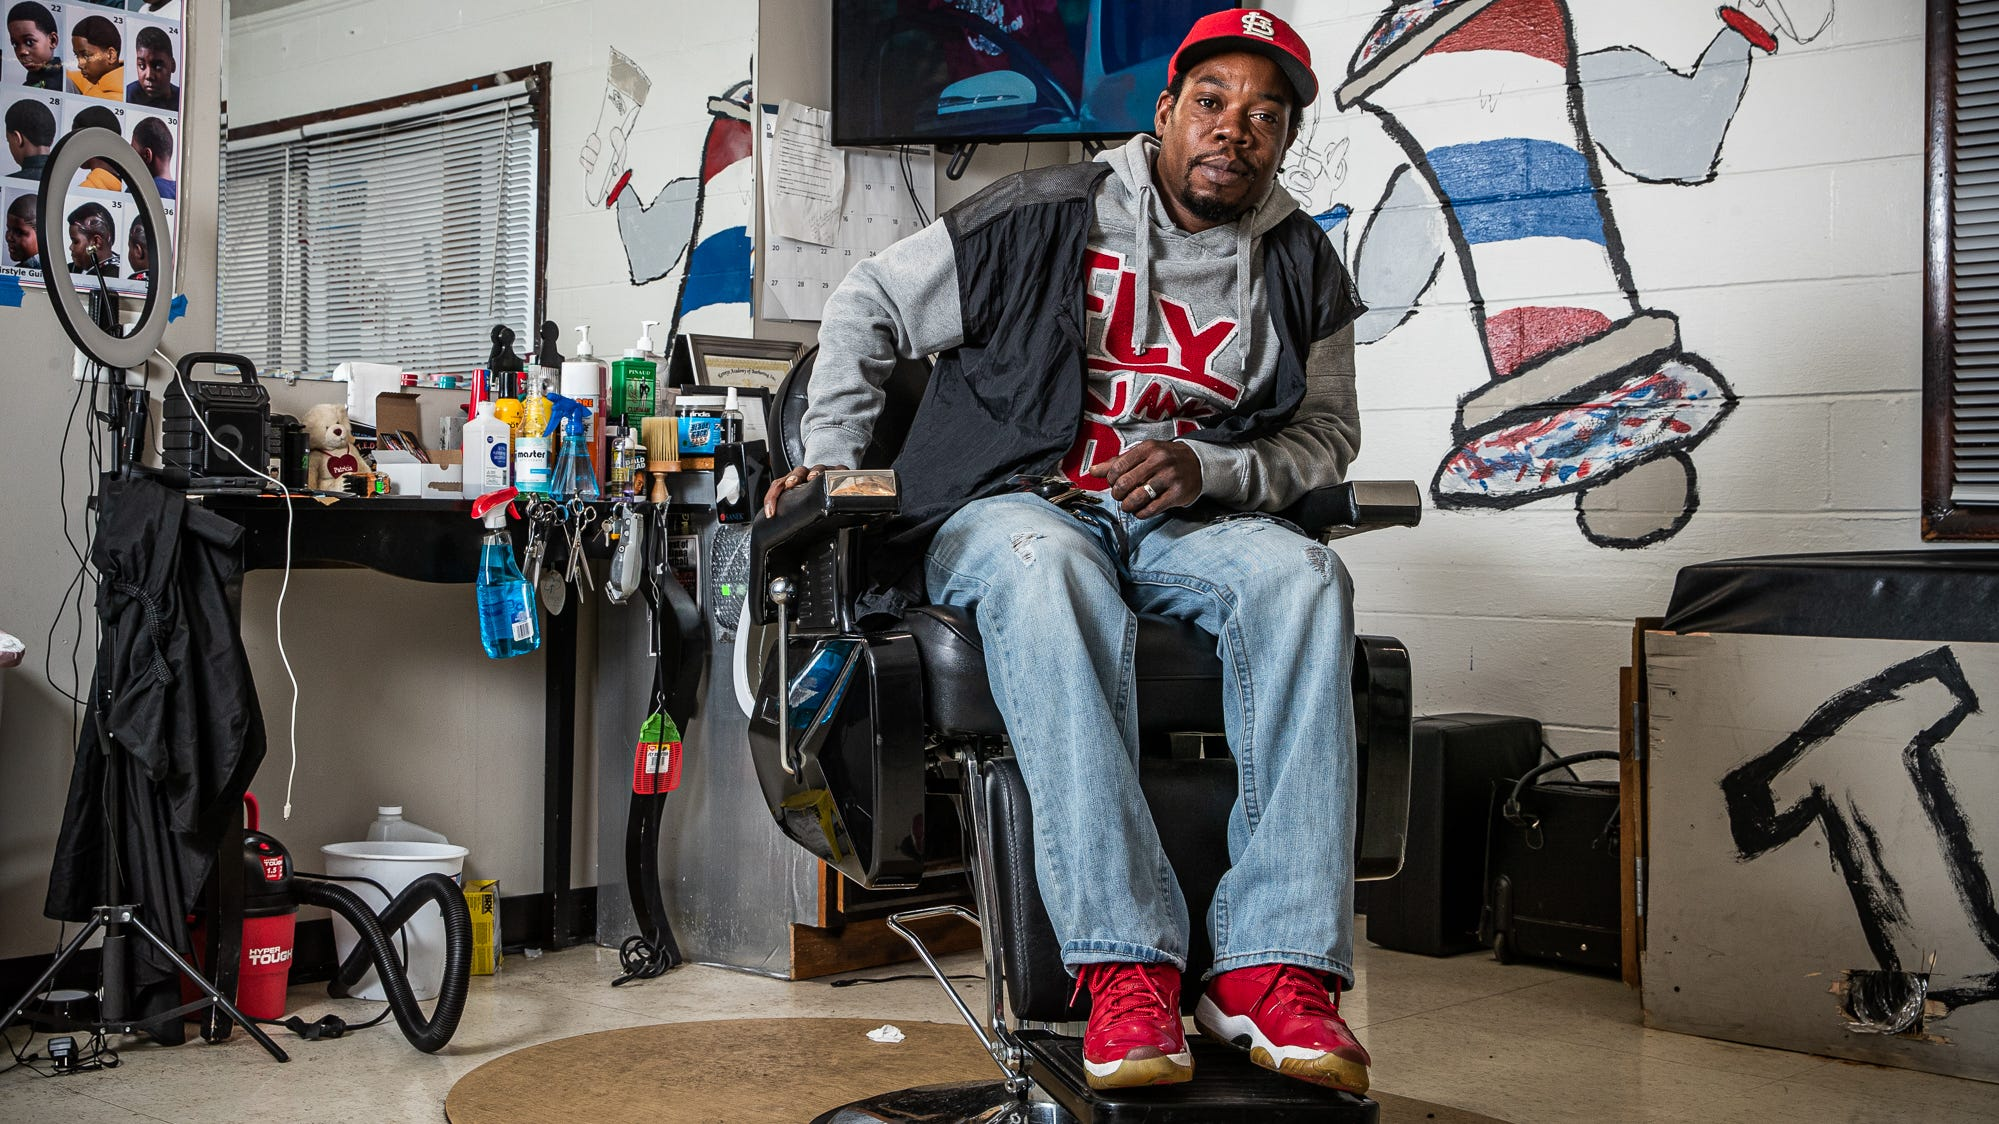 Tommy Dotson waits for his first customer of the day inside his barbershop, T.E.DÕZ Barbershop, in Indianapolis' Mars Hill neighborhood Friday, Oct. 8, 2021. Dotson used $15,000 of his savings, money left to him by his mother, to repair the old building and opened in February 2020. One month later, COVID-19 forced him to shut down. This was one of a series of obstacles Dotson has faced along the way to opening the shop. Despite the obstacles, he remains optimistic.